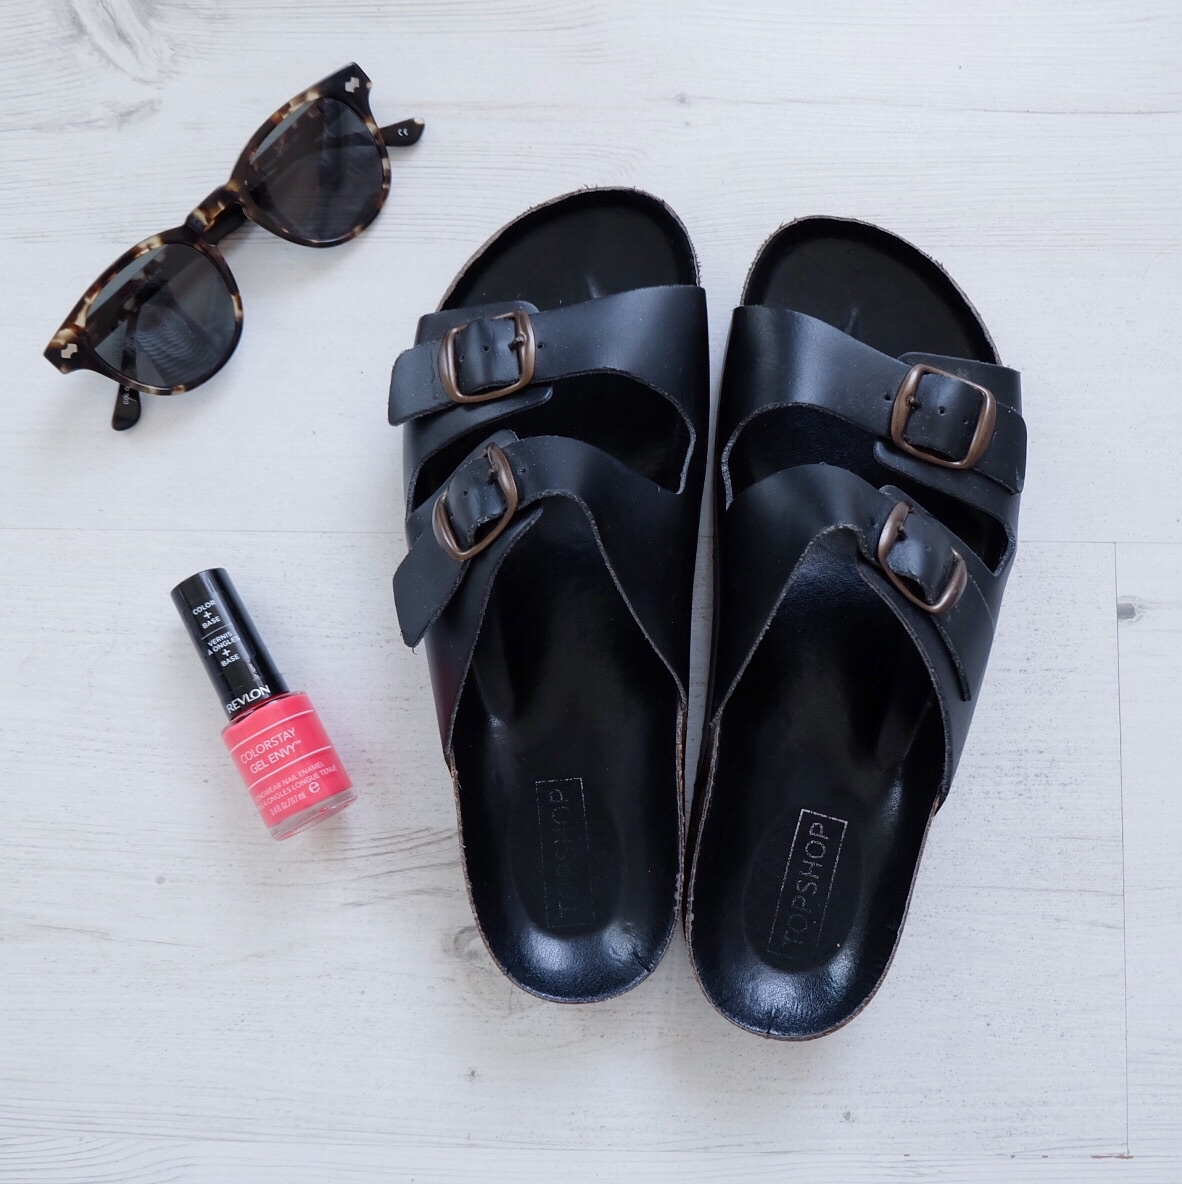 Topshop Double Heights Sandals, London Retro 'Reggie' Glasses, Flatlay